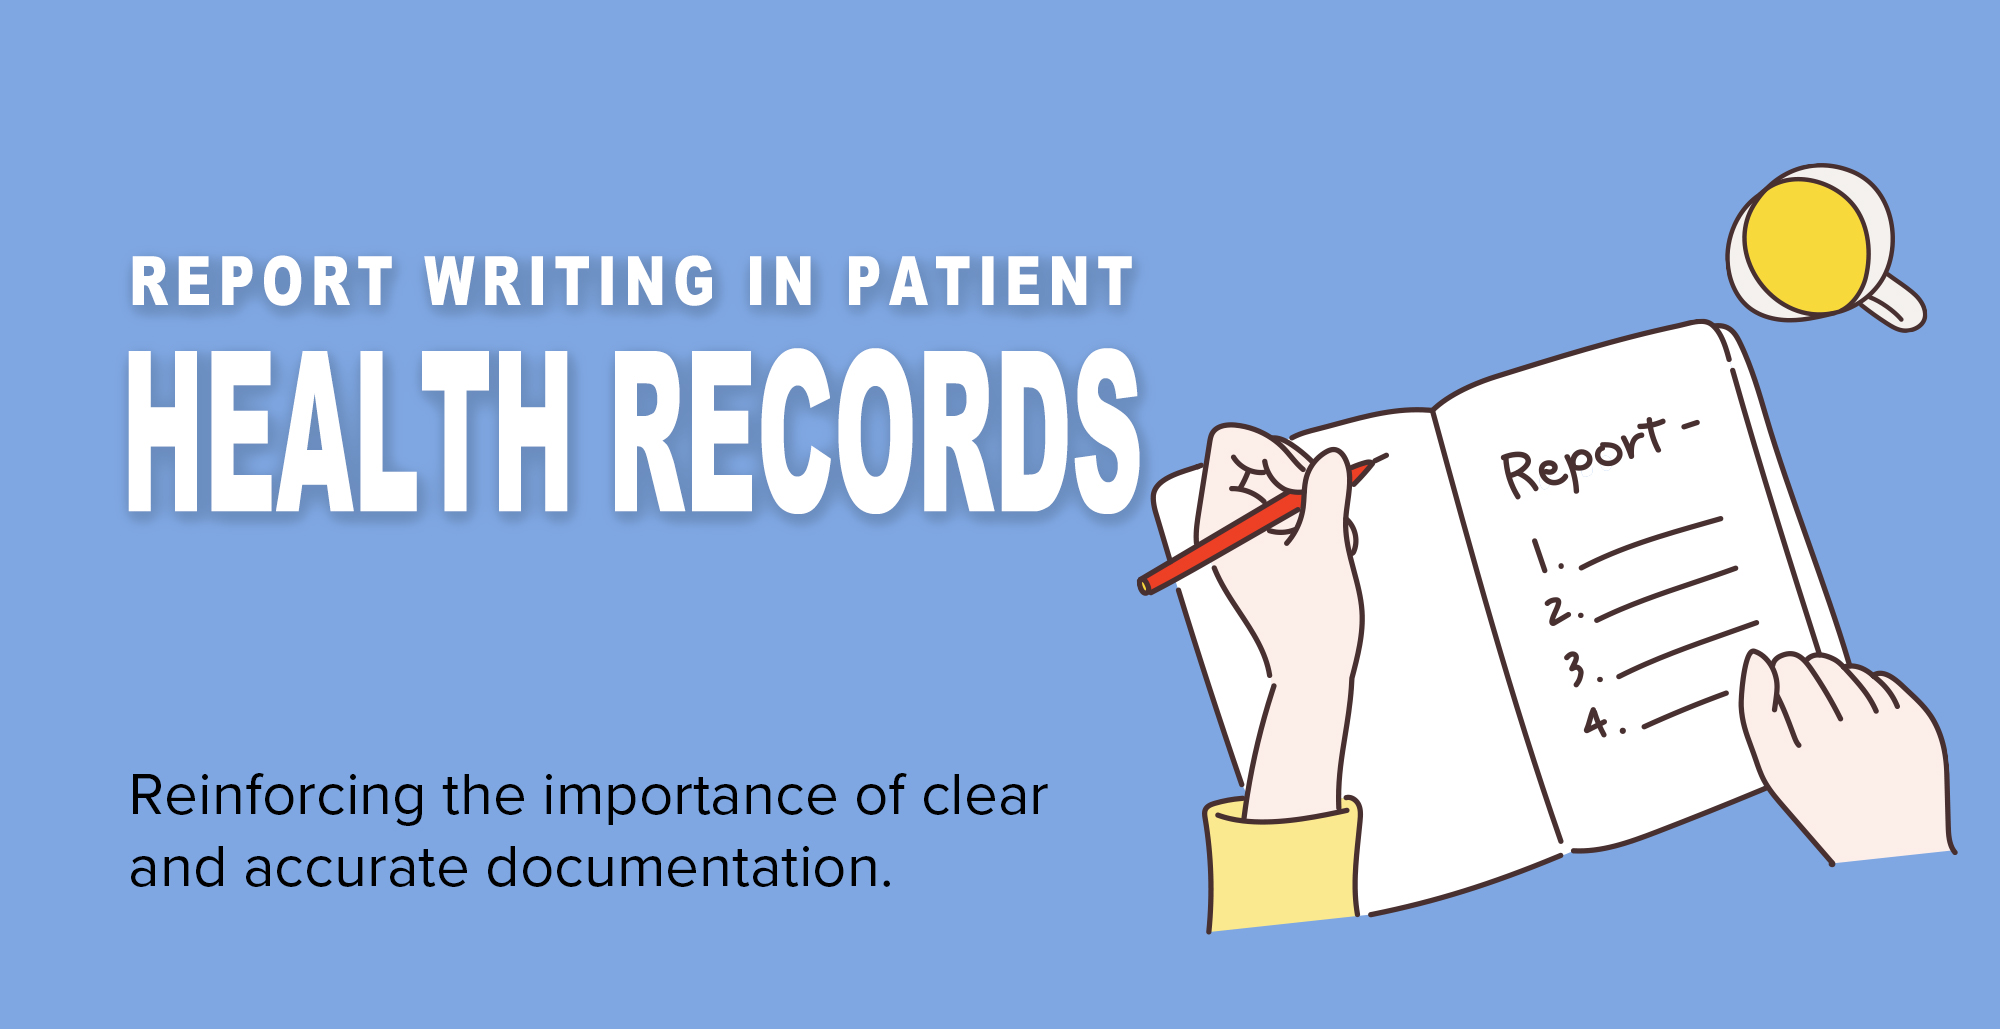 Cover image for: 'Report Writing in Patient Health Records'